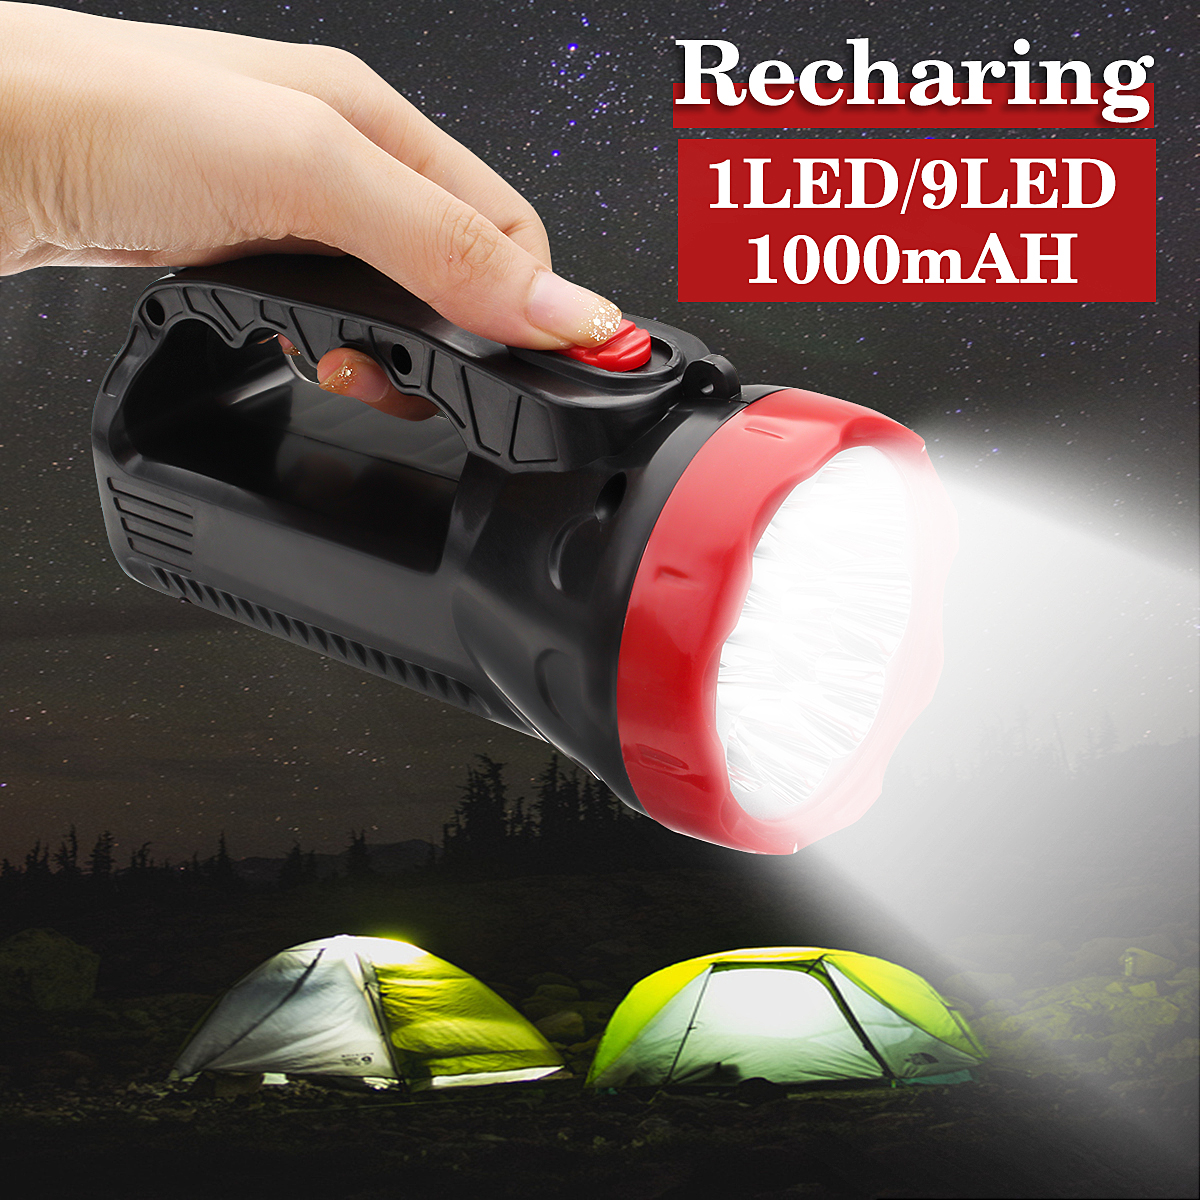 5W 1000mAh LED Outdoor Portable Super Bright Torch Flashlight Lamp Rechargeable Camping Lantern